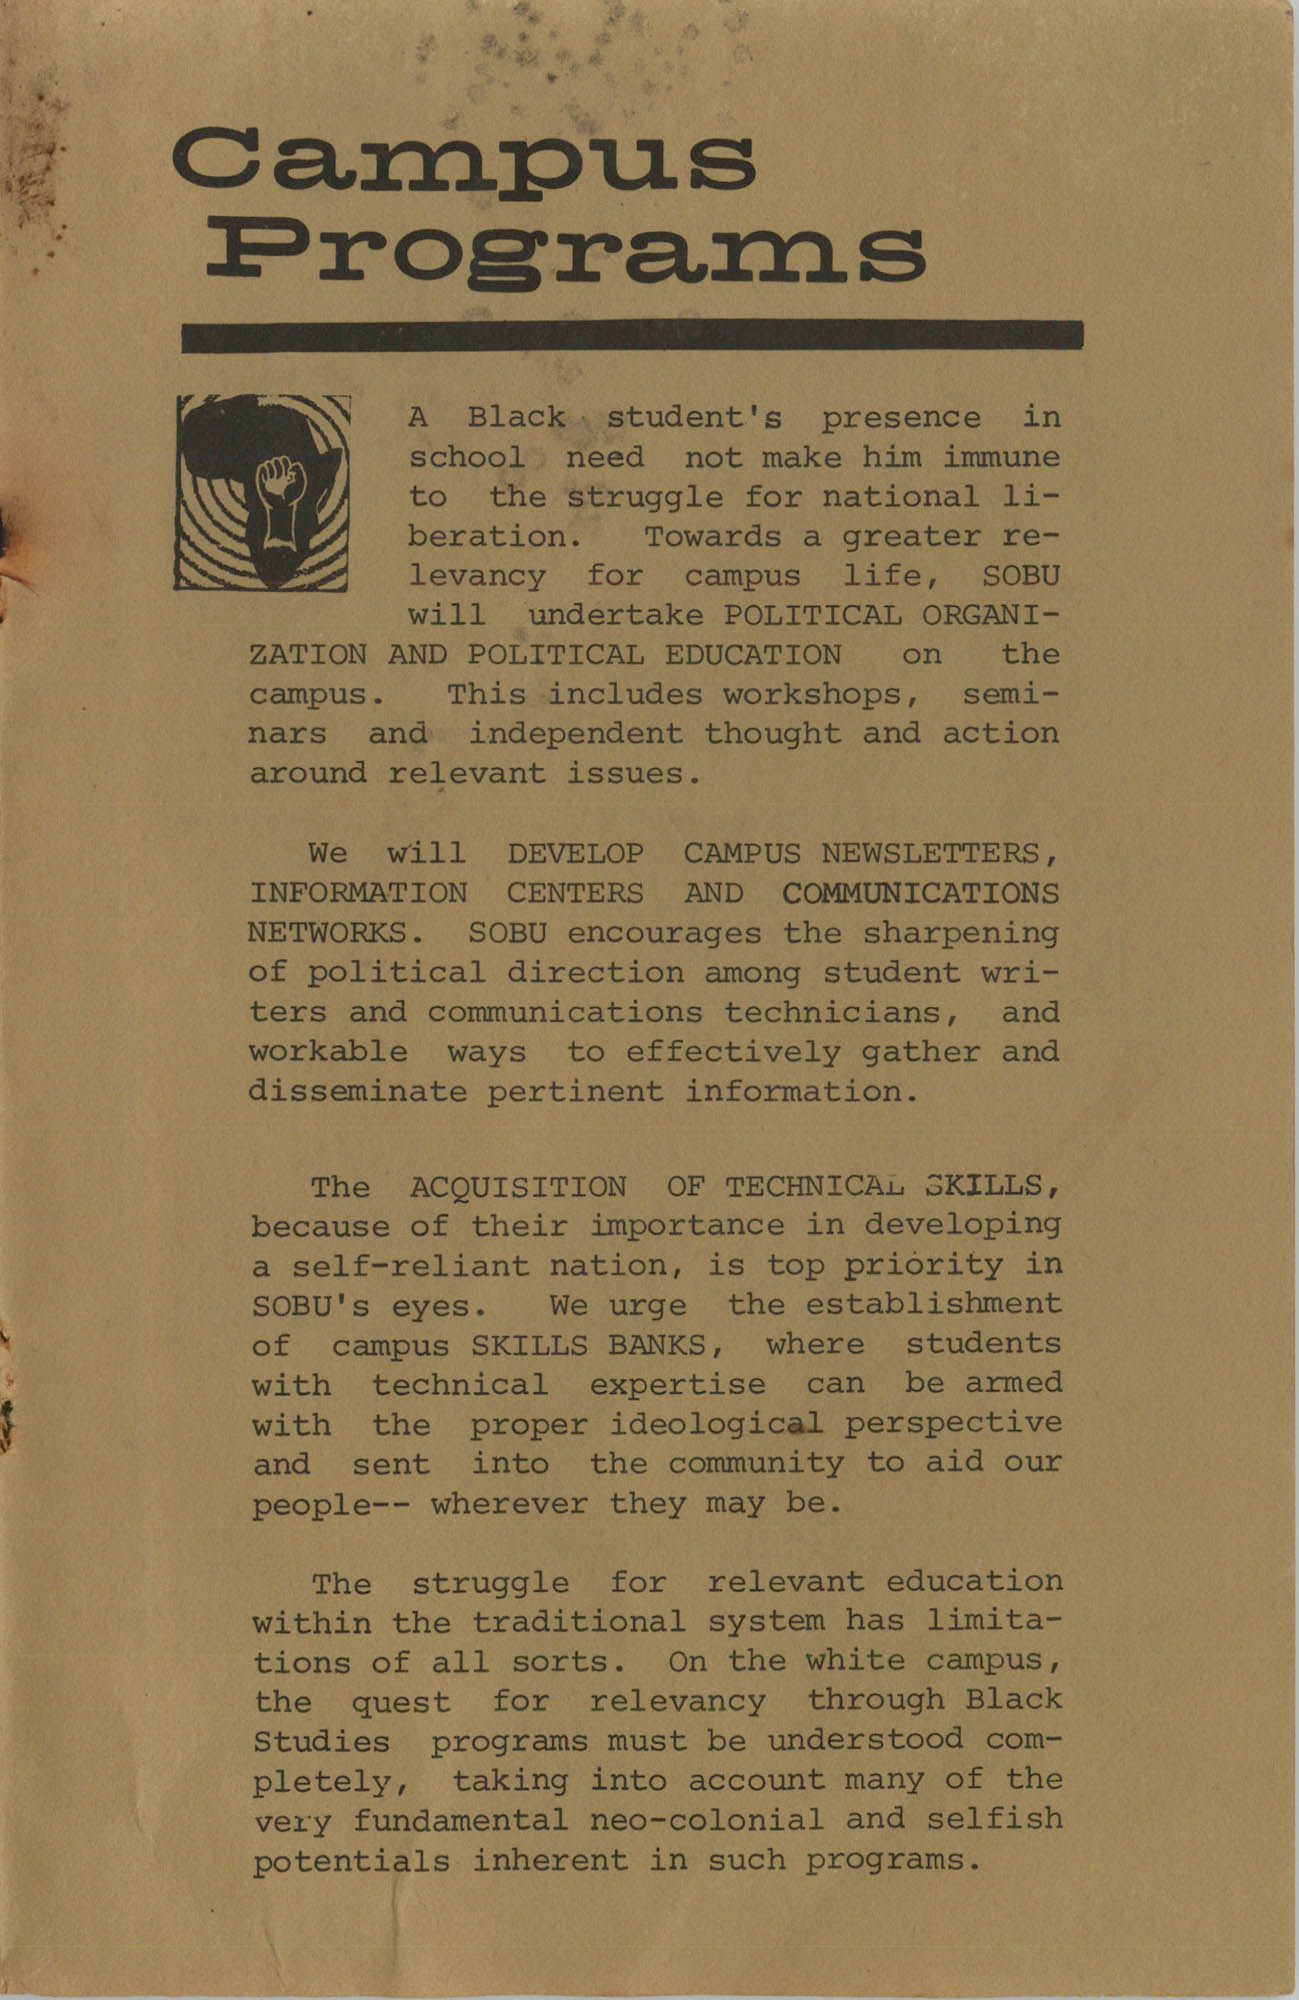 Work for African Liberation, Page 7